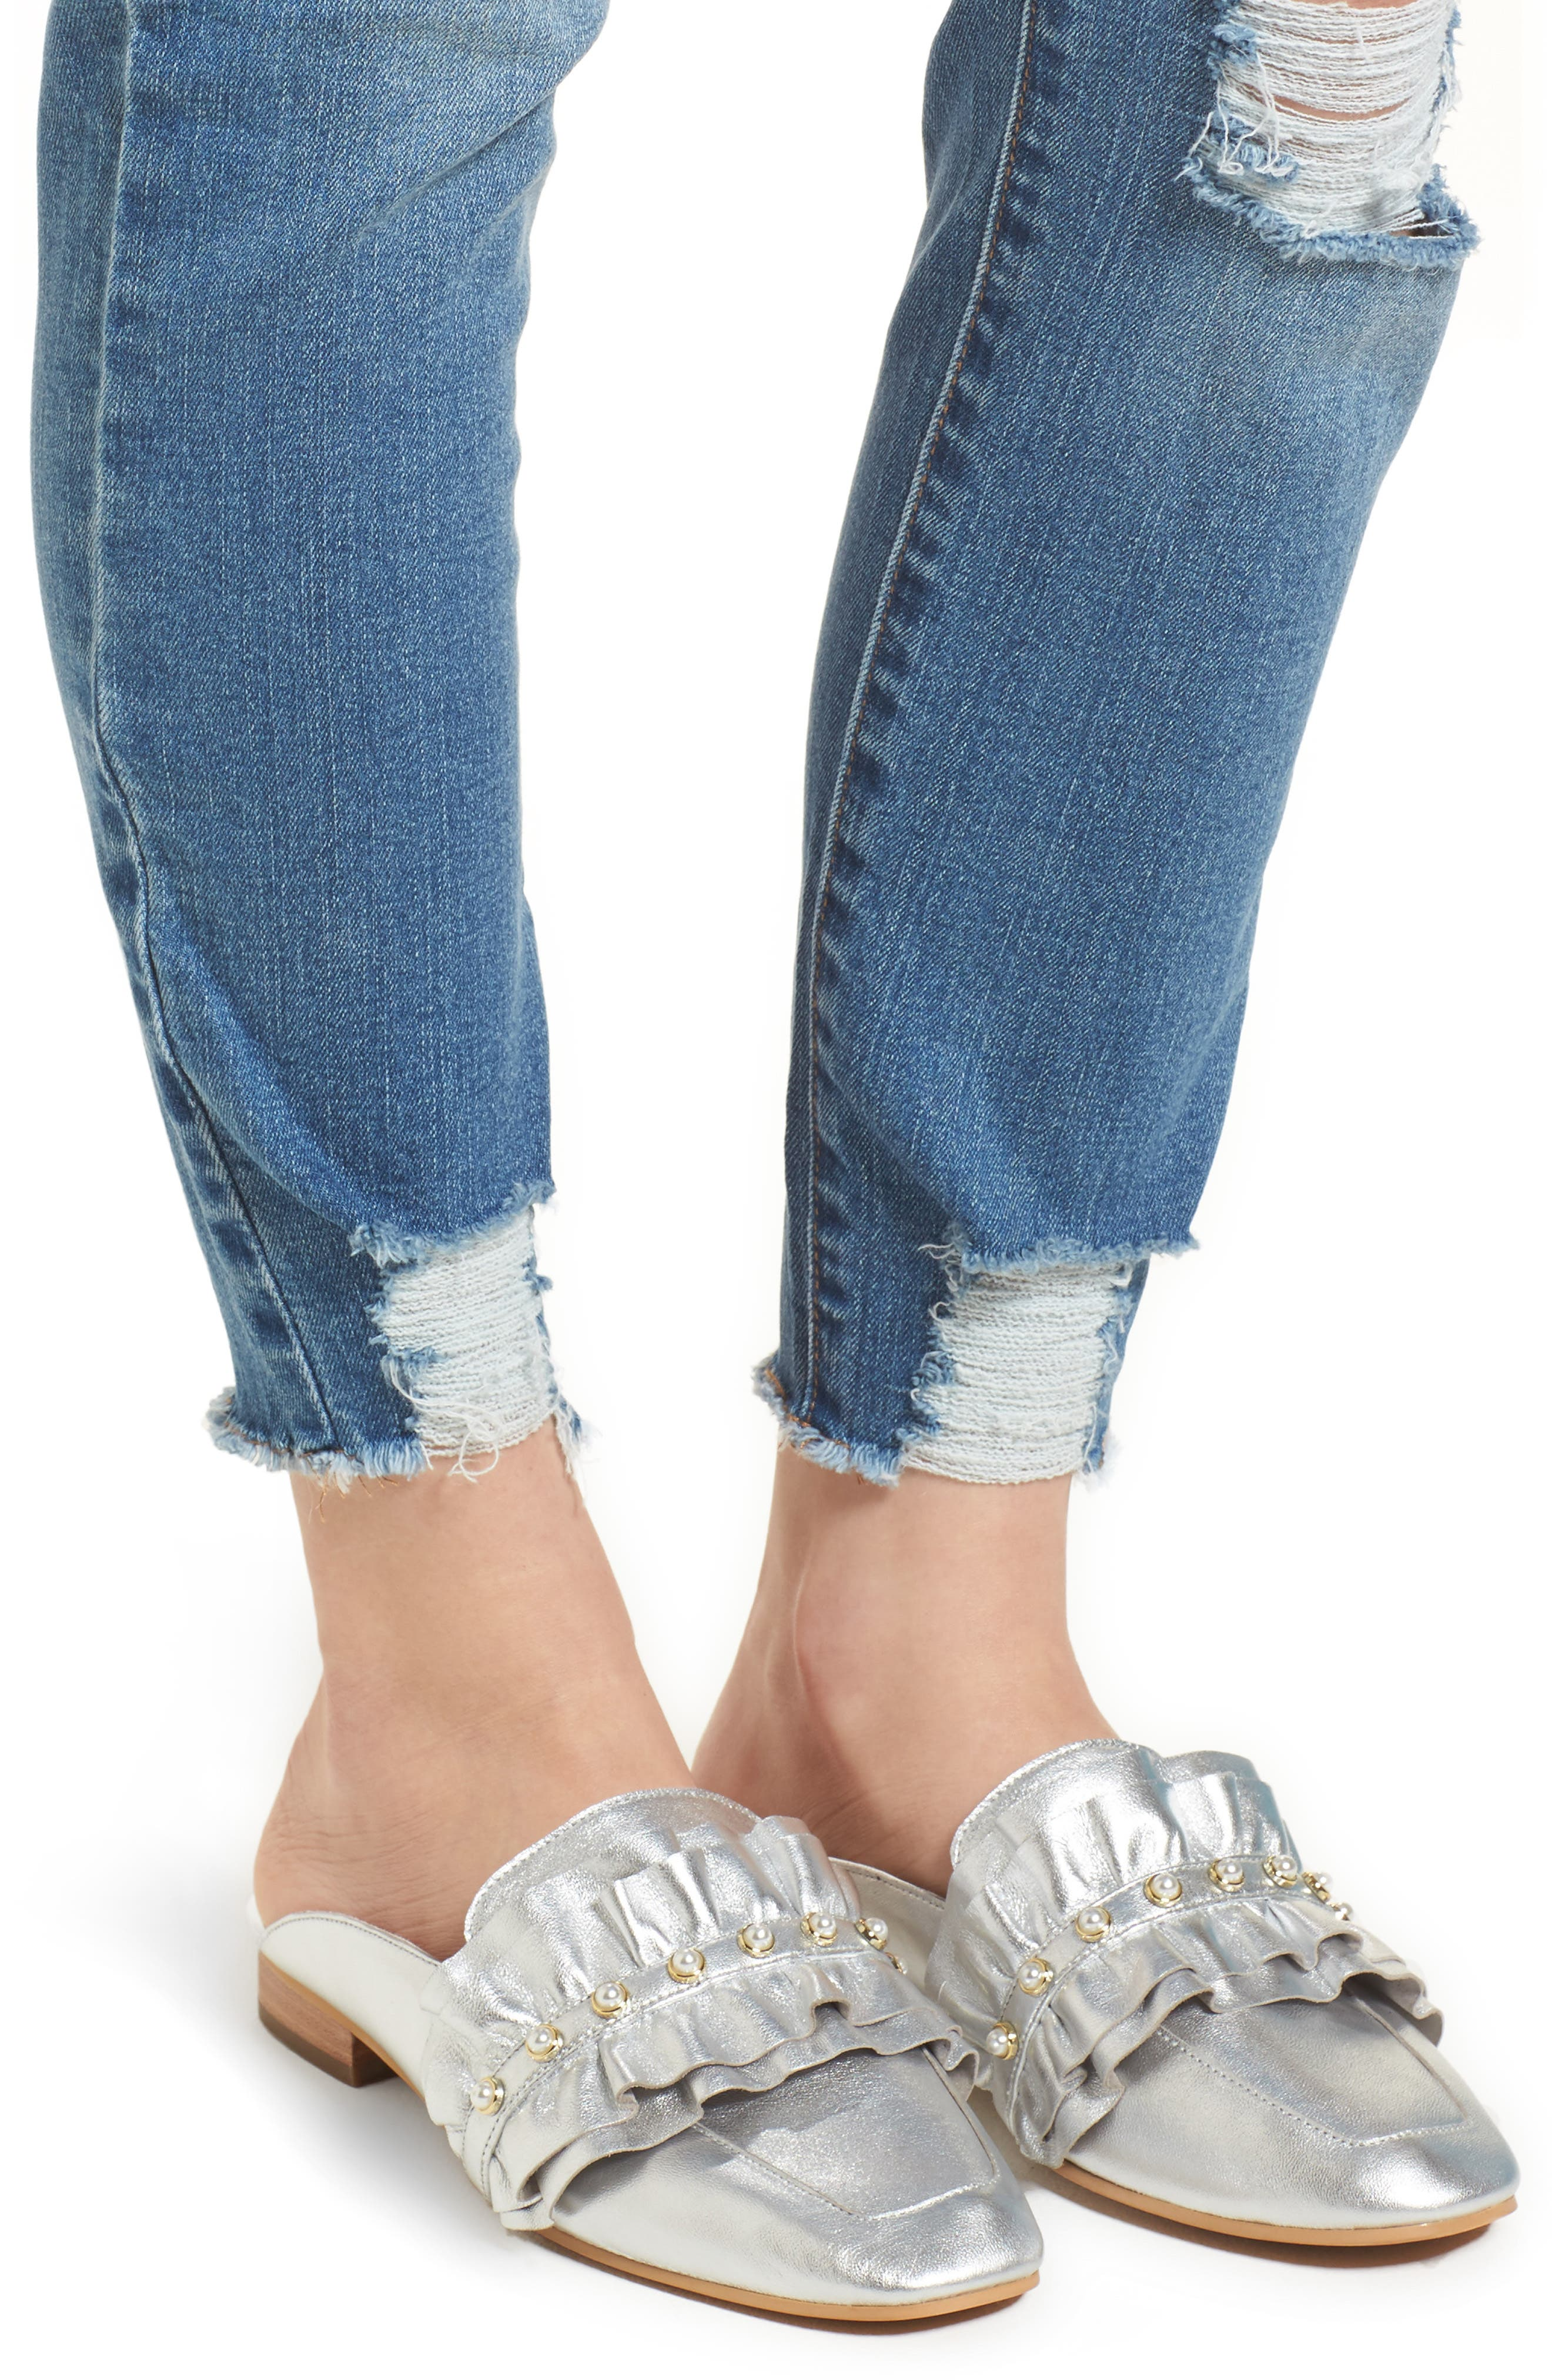 Decon Ripped Skinny Jeans,                             Alternate thumbnail 4, color,                             426